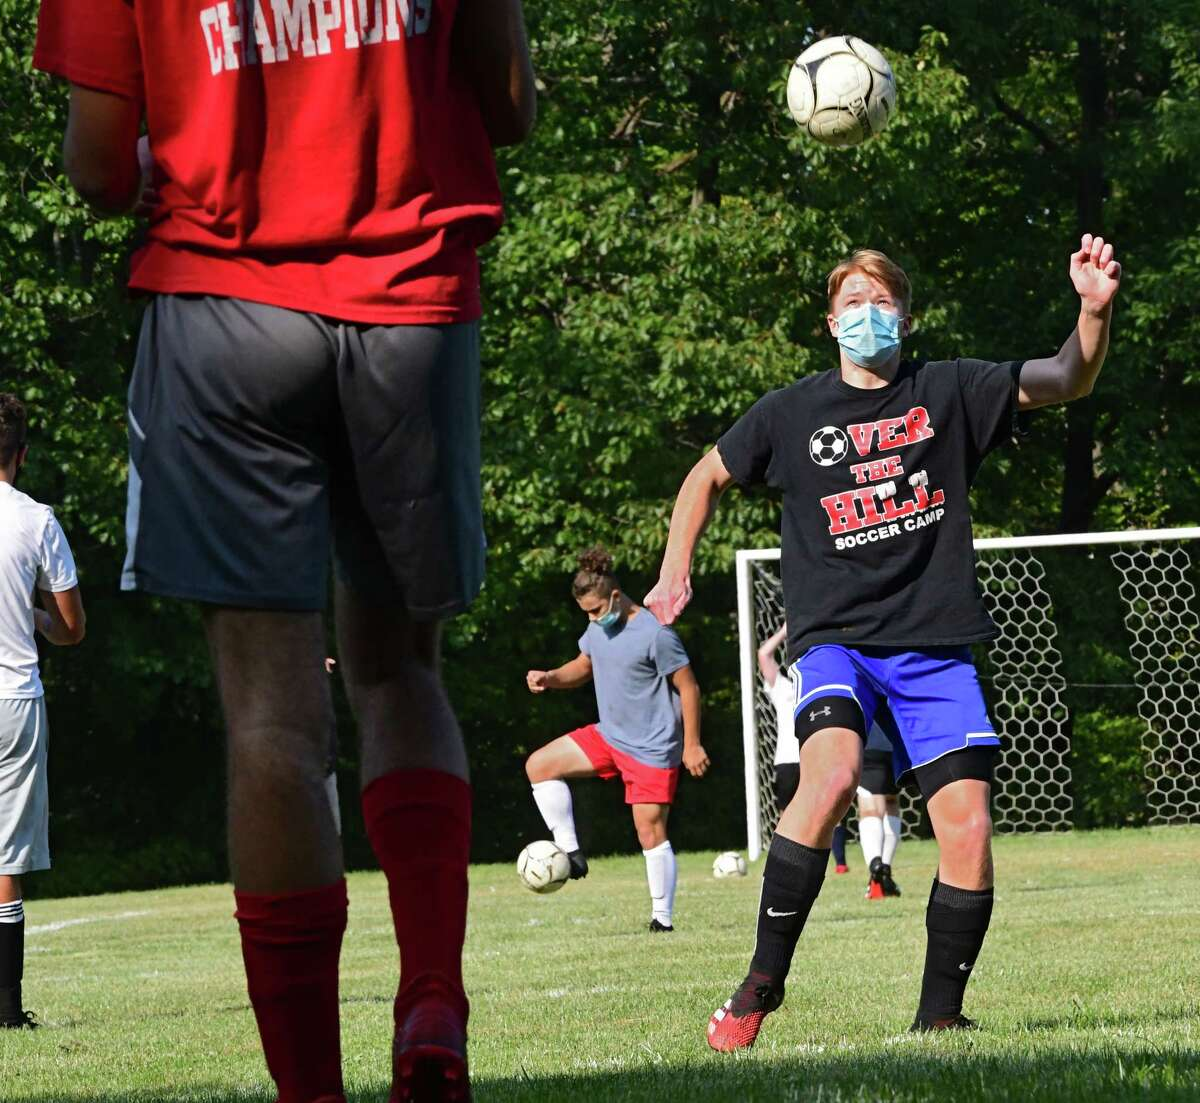 Dominic Hirschoff, left, throws the ball to Aiden Fletcher, right, who heads it during boy's soccer practice at Maple Hill Middle School on Monday, Sept. 21, 2020 in Schodack, N.Y. (Lori Van Buren/Times Union)